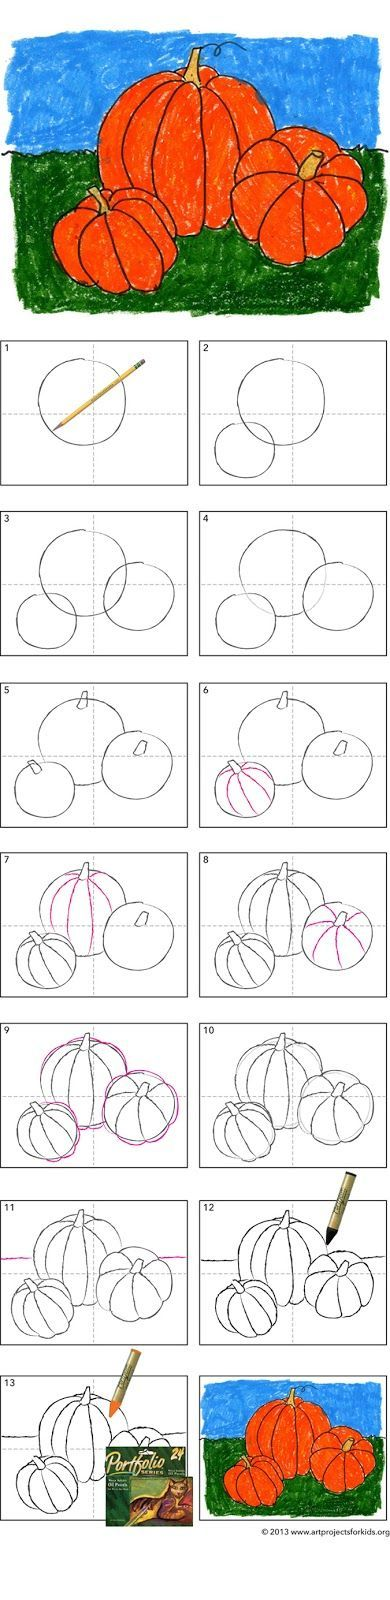 "How to Draw a Pumpkin Tutorial | Do weekly ""how-to"" as brain break (rather than as art project)...kids would love it!"